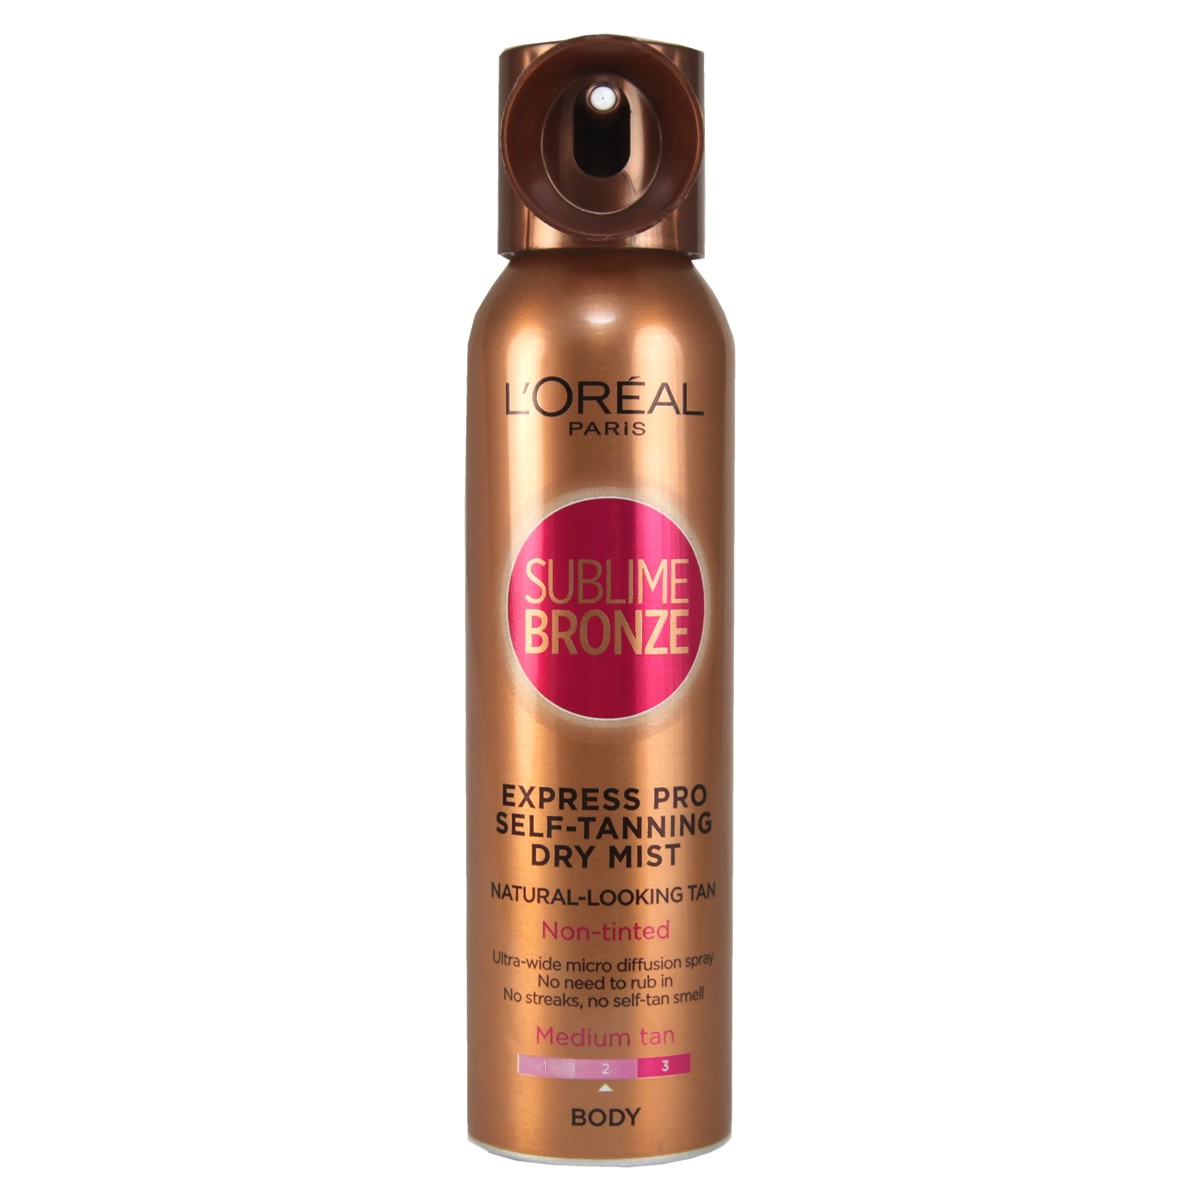 L'Oreal Paris Sublime Bronze Express Pro Self-Tanning Dry Mist Spray For Body - Medium Skin